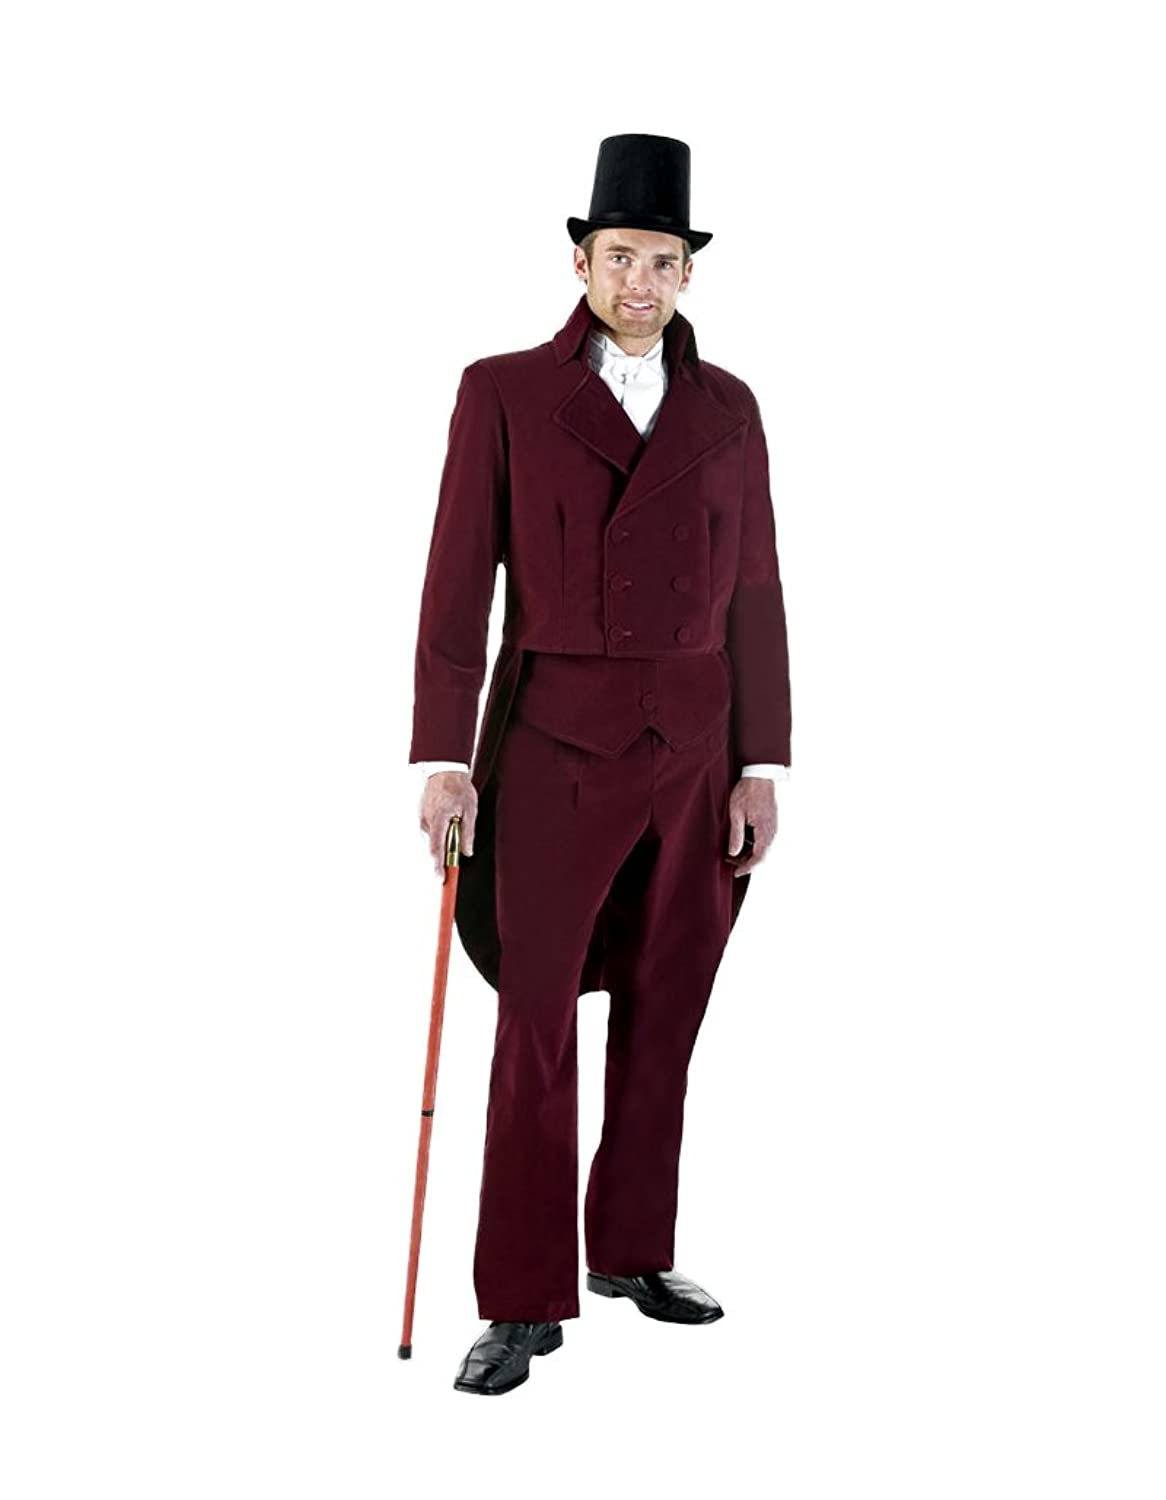 Vintage Men's Costumes – 1920s, 1930s, 1940s, 1950s, 1960s Tabis Characters Mens Charles Dickens Caroler Tail Suit Theater Costume  AT vintagedancer.com